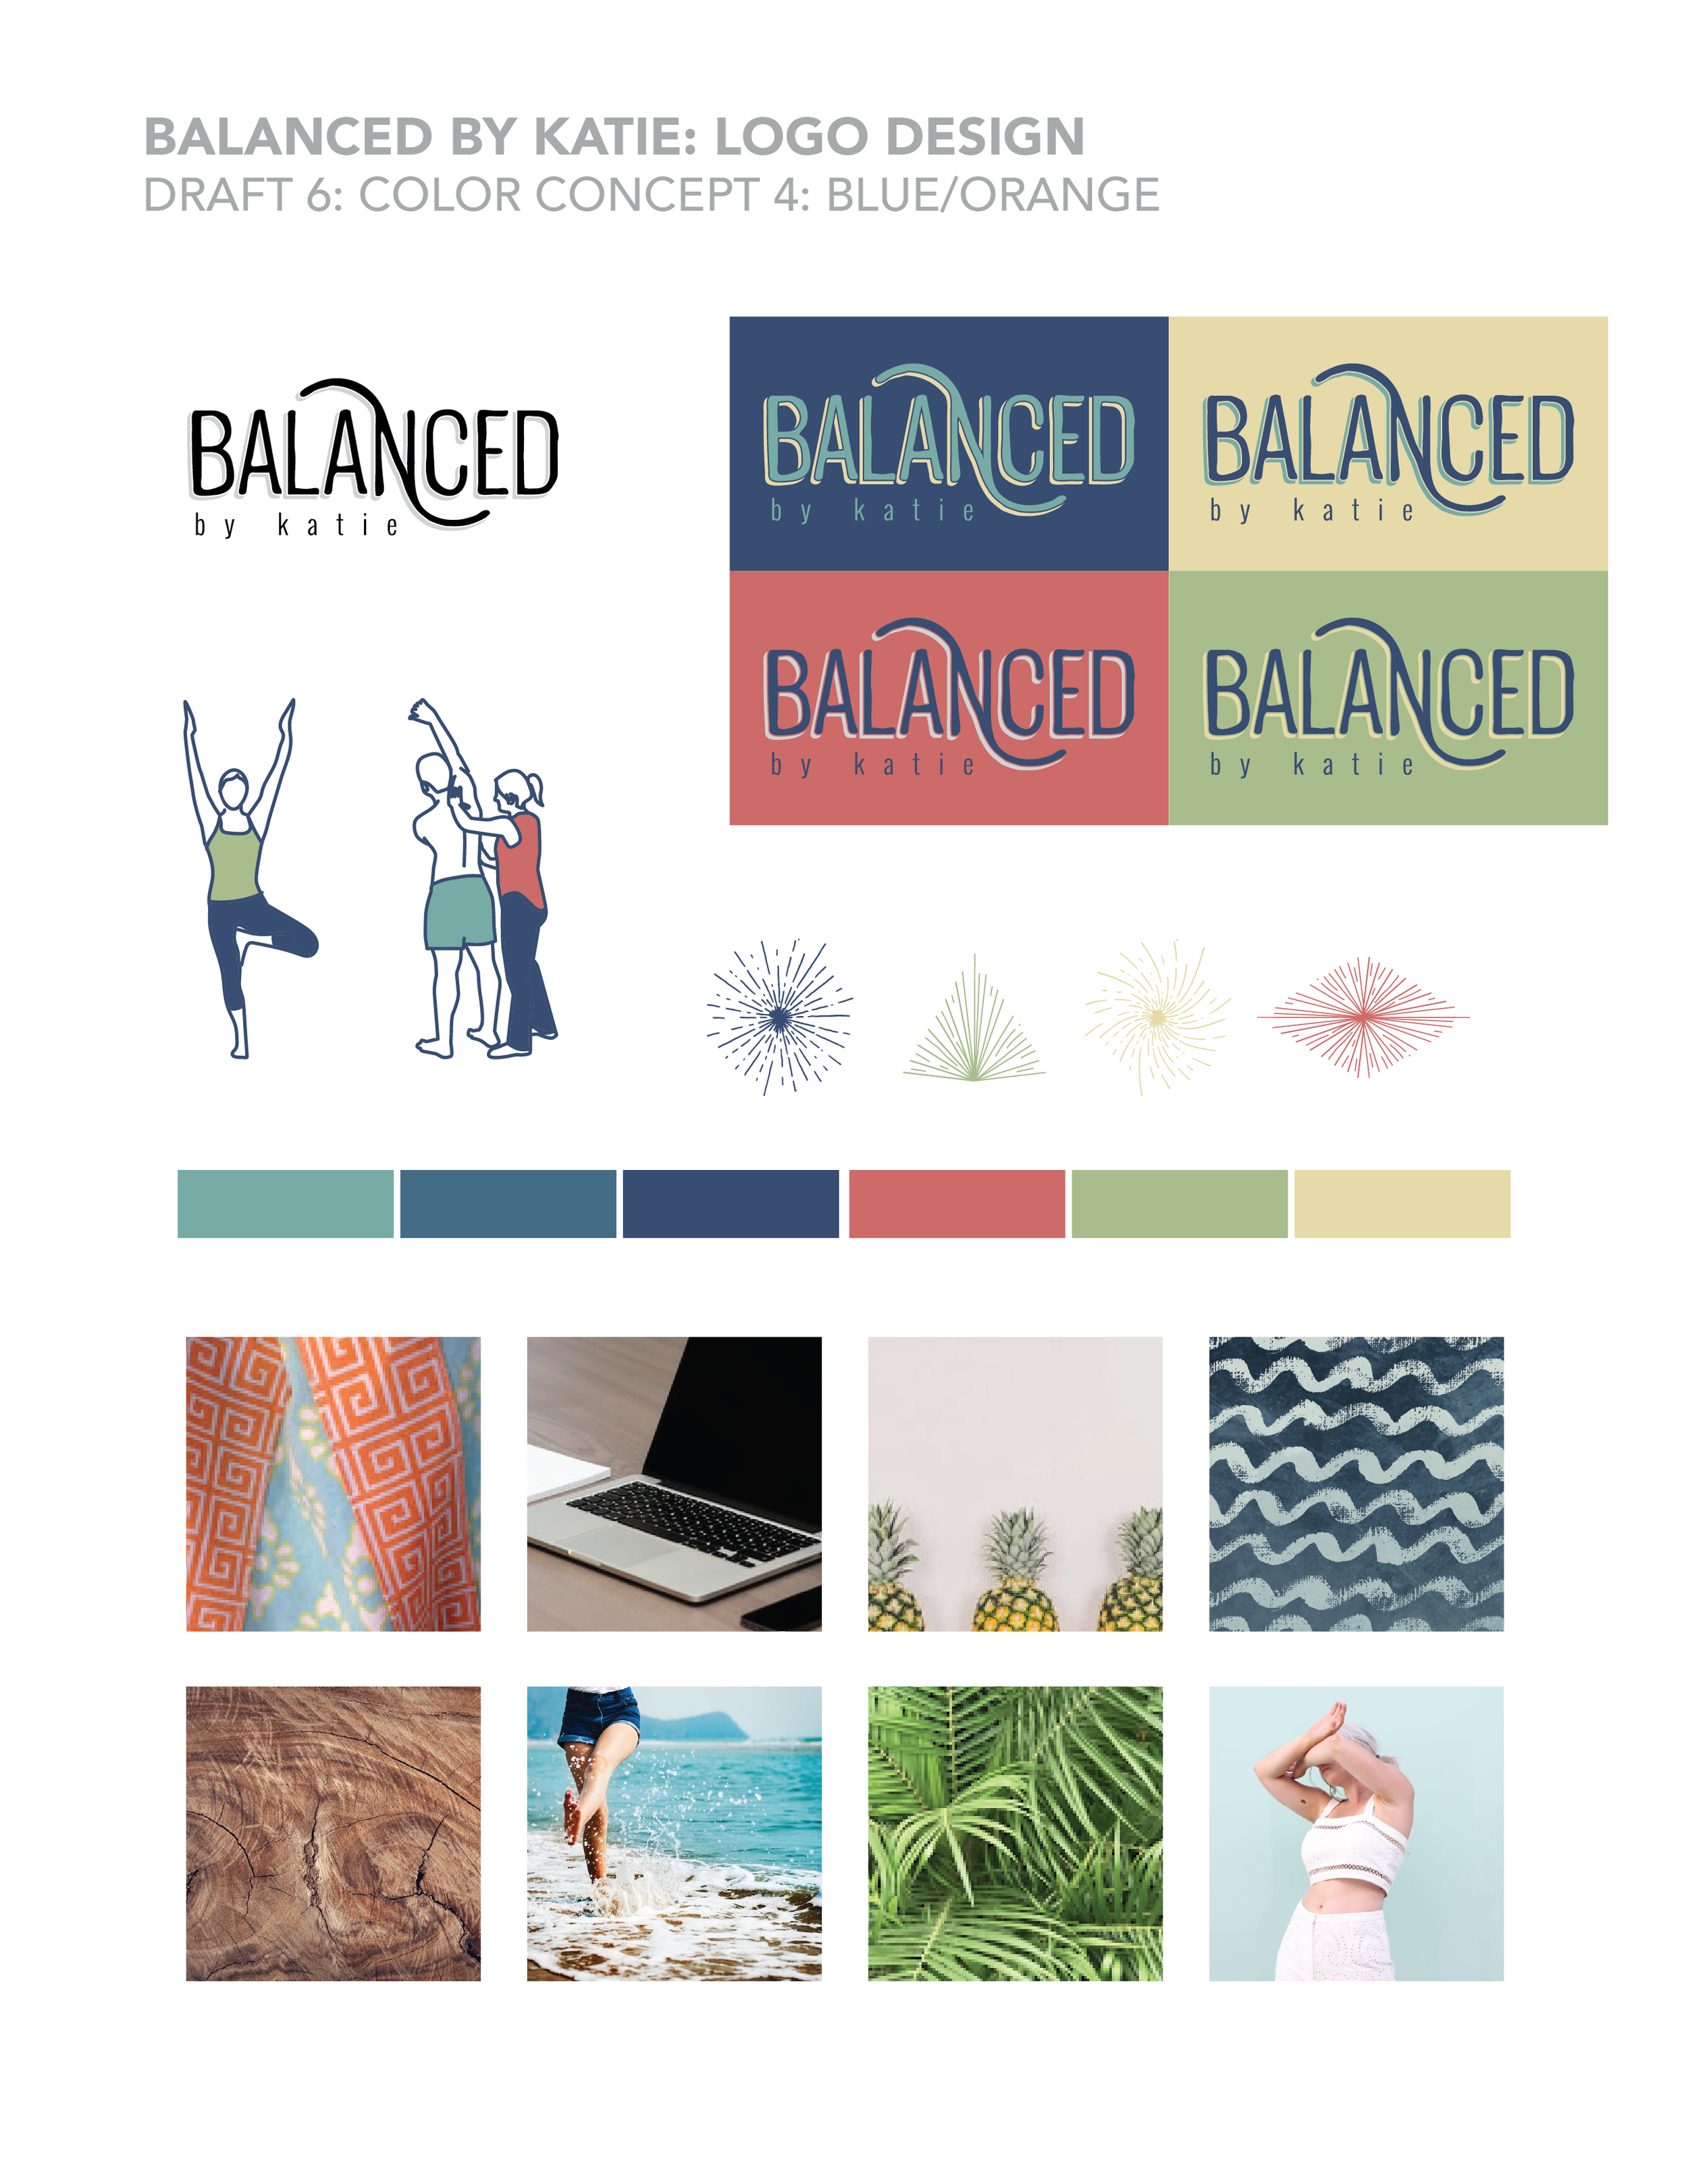 Balanced by Kaite_Draft 6-05.png